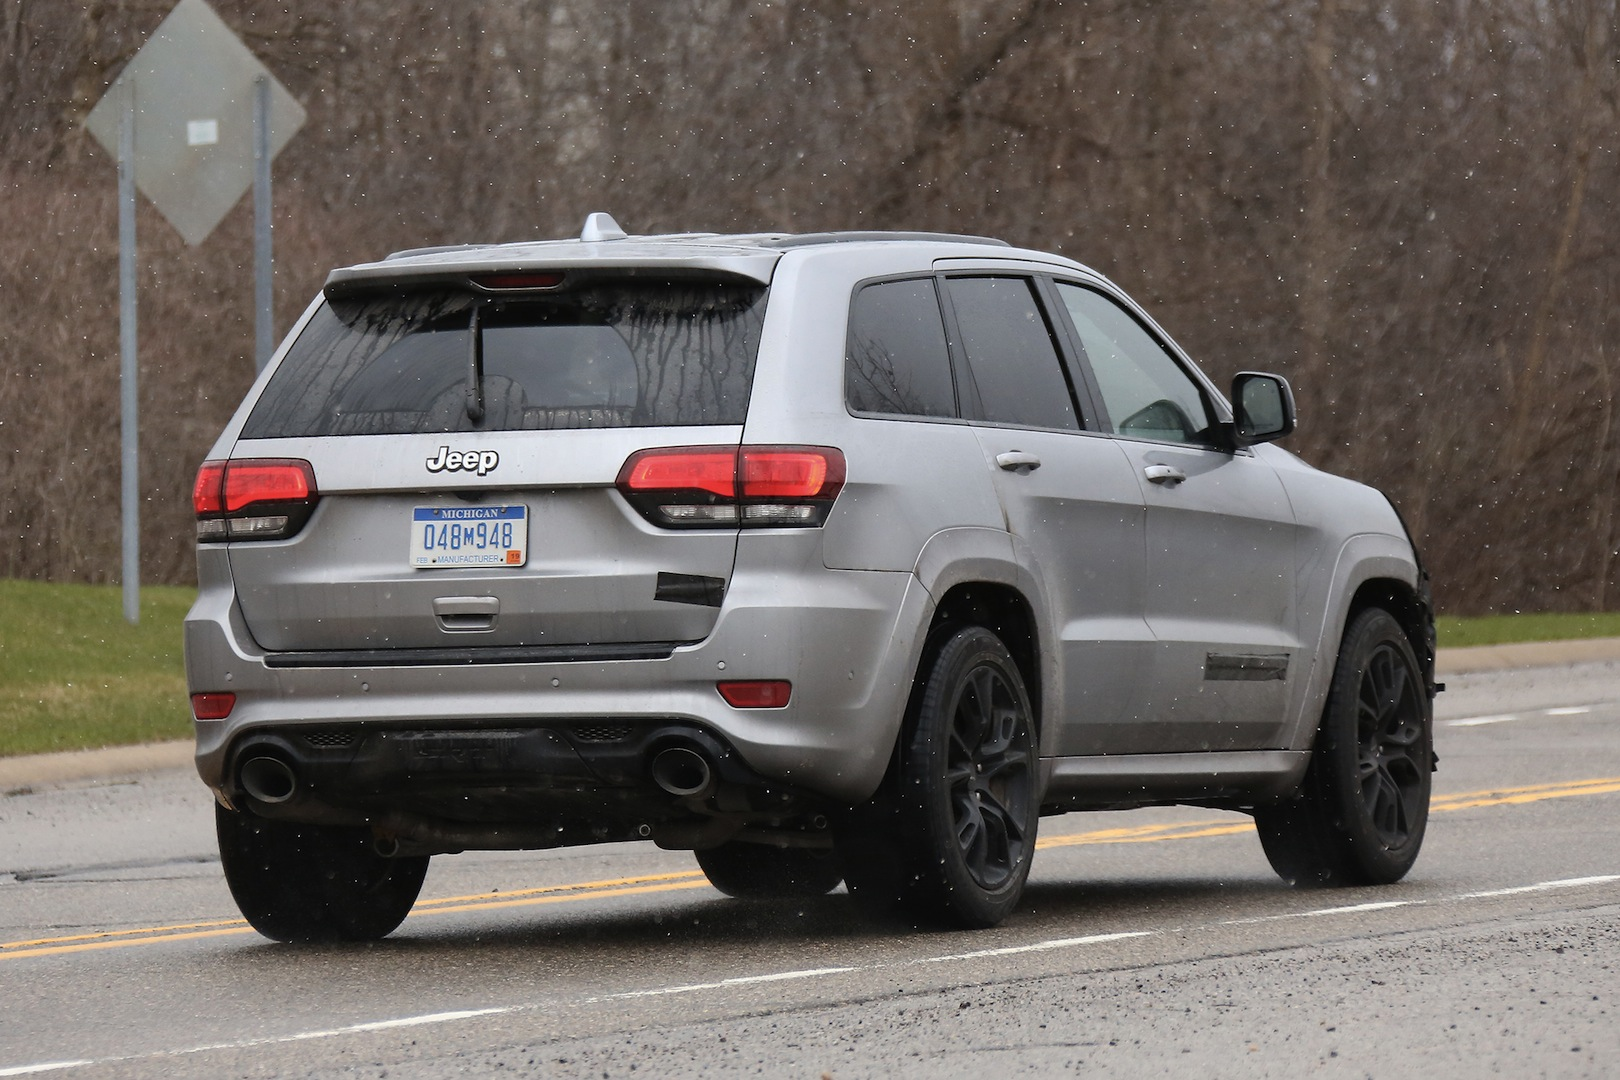 jeep grand cherokee picture - photo #10